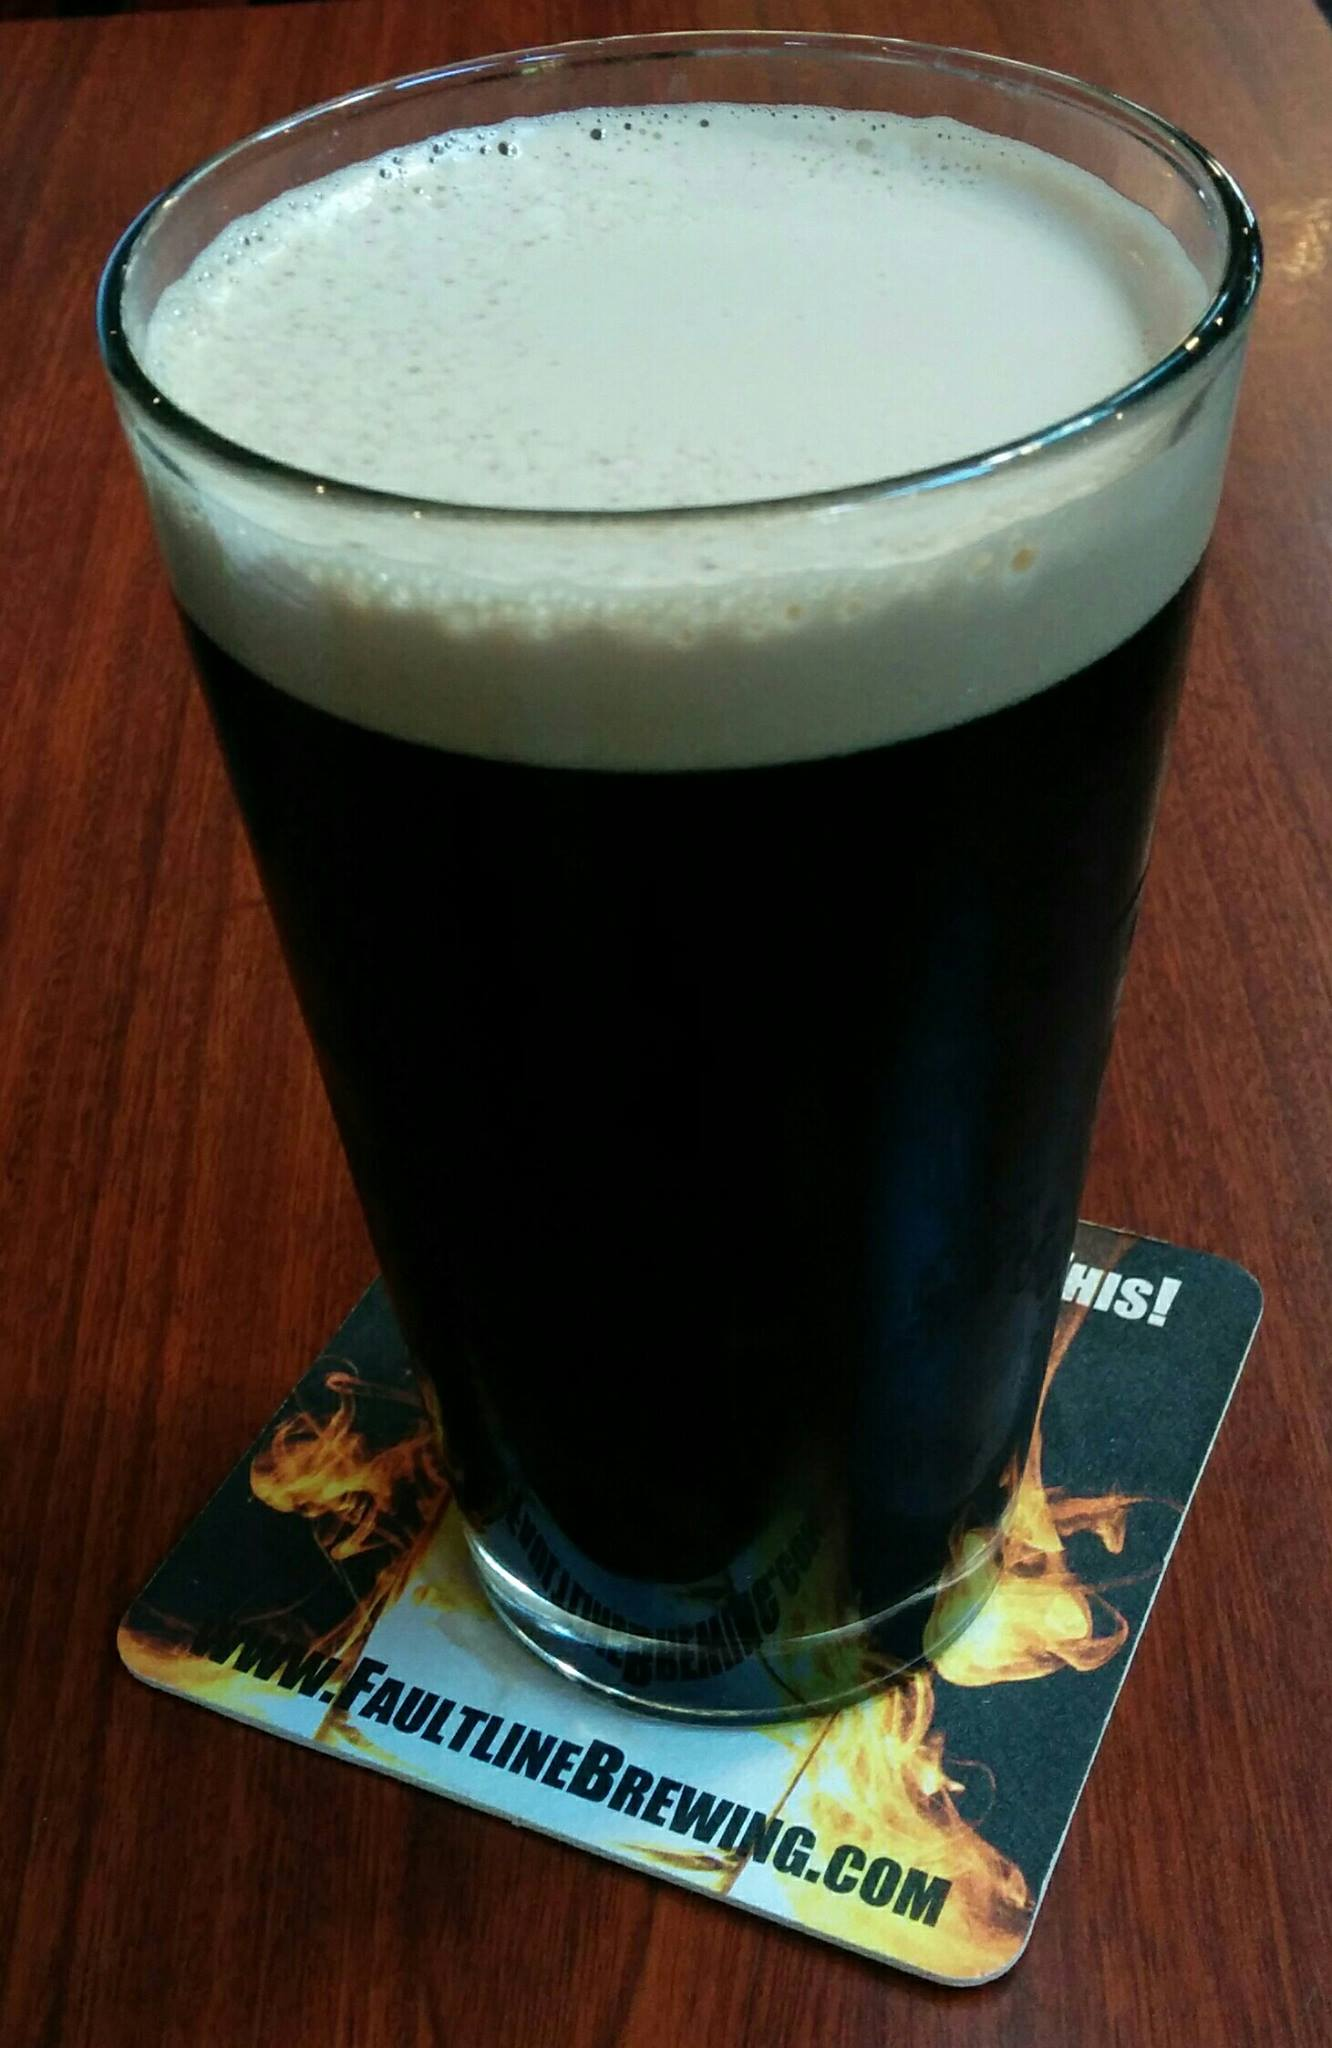 Pint of Irish Stout on St Patrick's Day, at the Faultline Brewery, Santa Clara, California